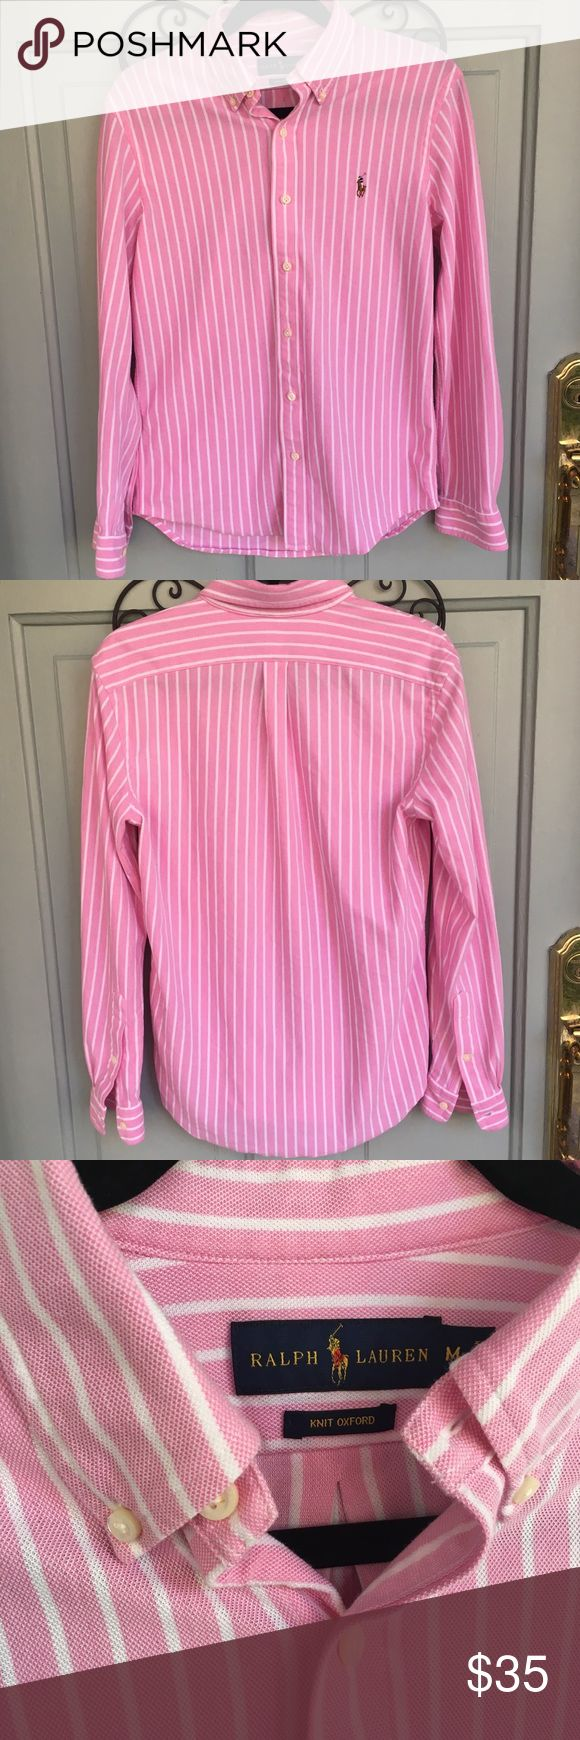 Ralph Lauren Pink and White Knit Oxford Ralph Lauren Pink and White Knit Oxford. Softest shirt ever. It's men's but women can wear it too;) Excellent condition. Ralph Lauren Shirts Casual Button Down Shirts